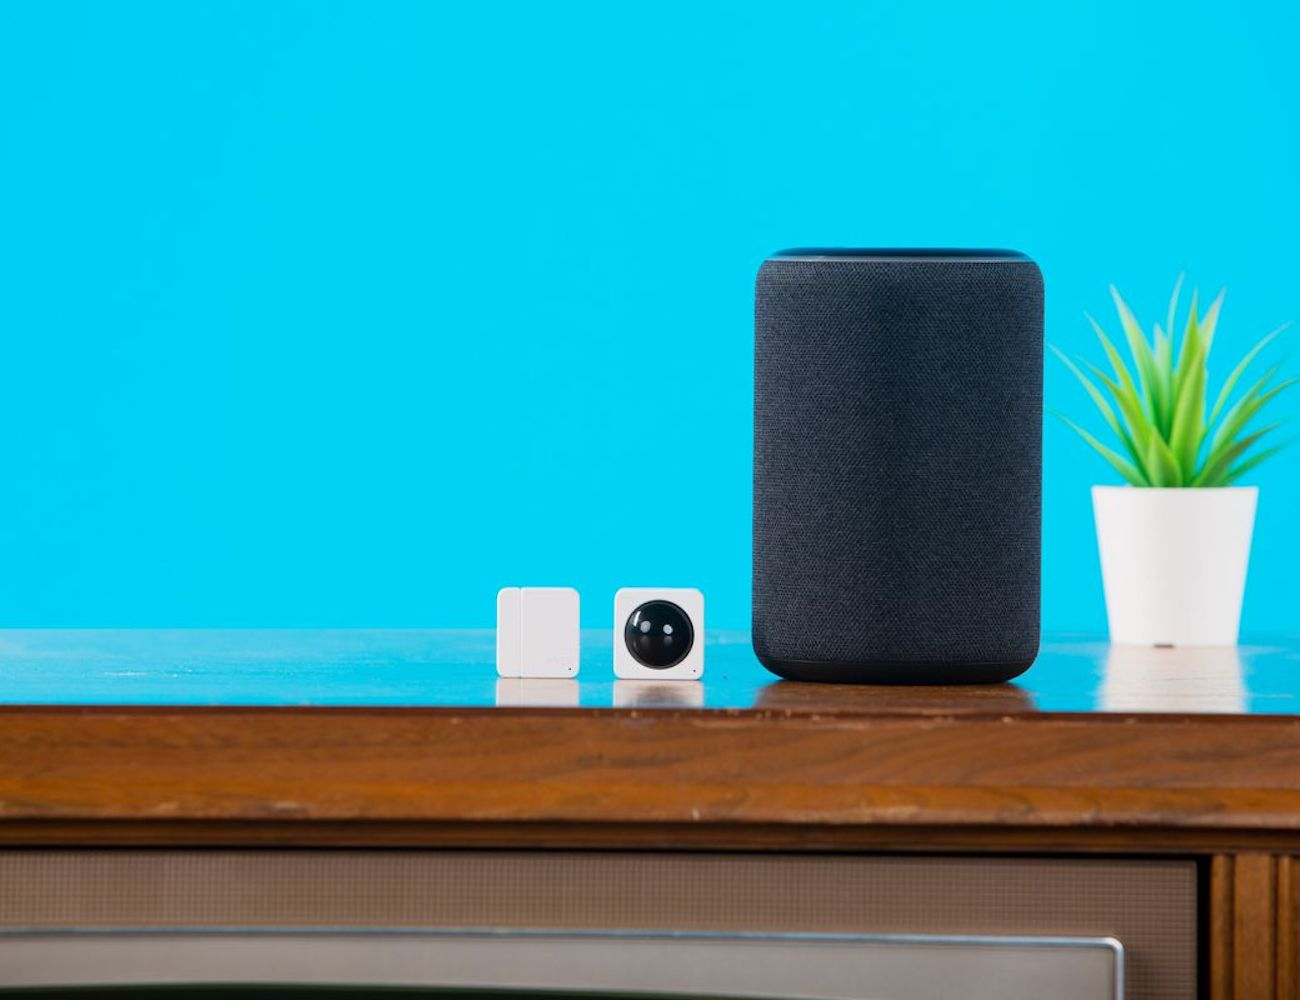 Wyze Sense Home Sensor System includes motion and contact sensors